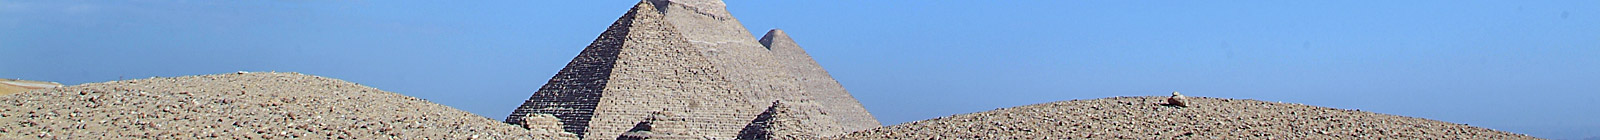 Egypt, Great Pyramids.